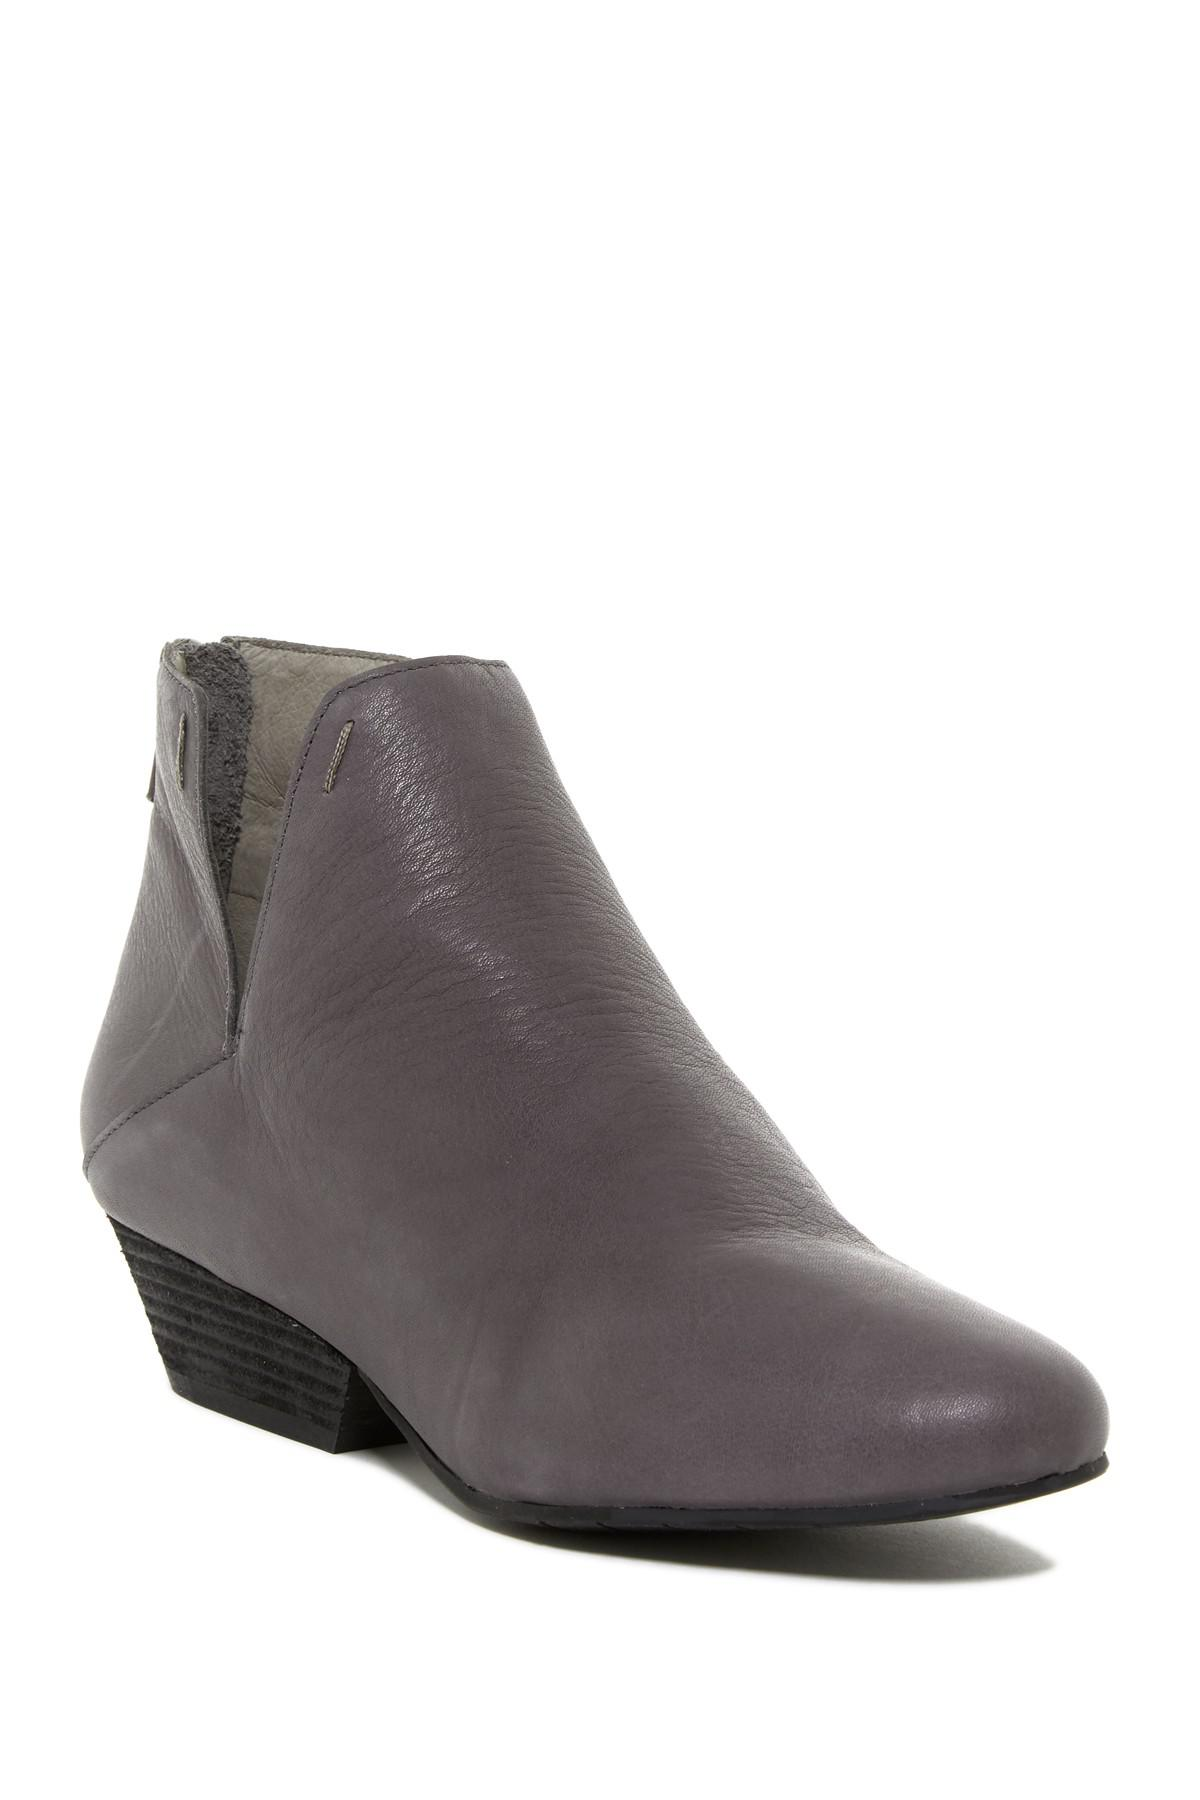 Eileen Fisher Womens Vale Ankle Bootie